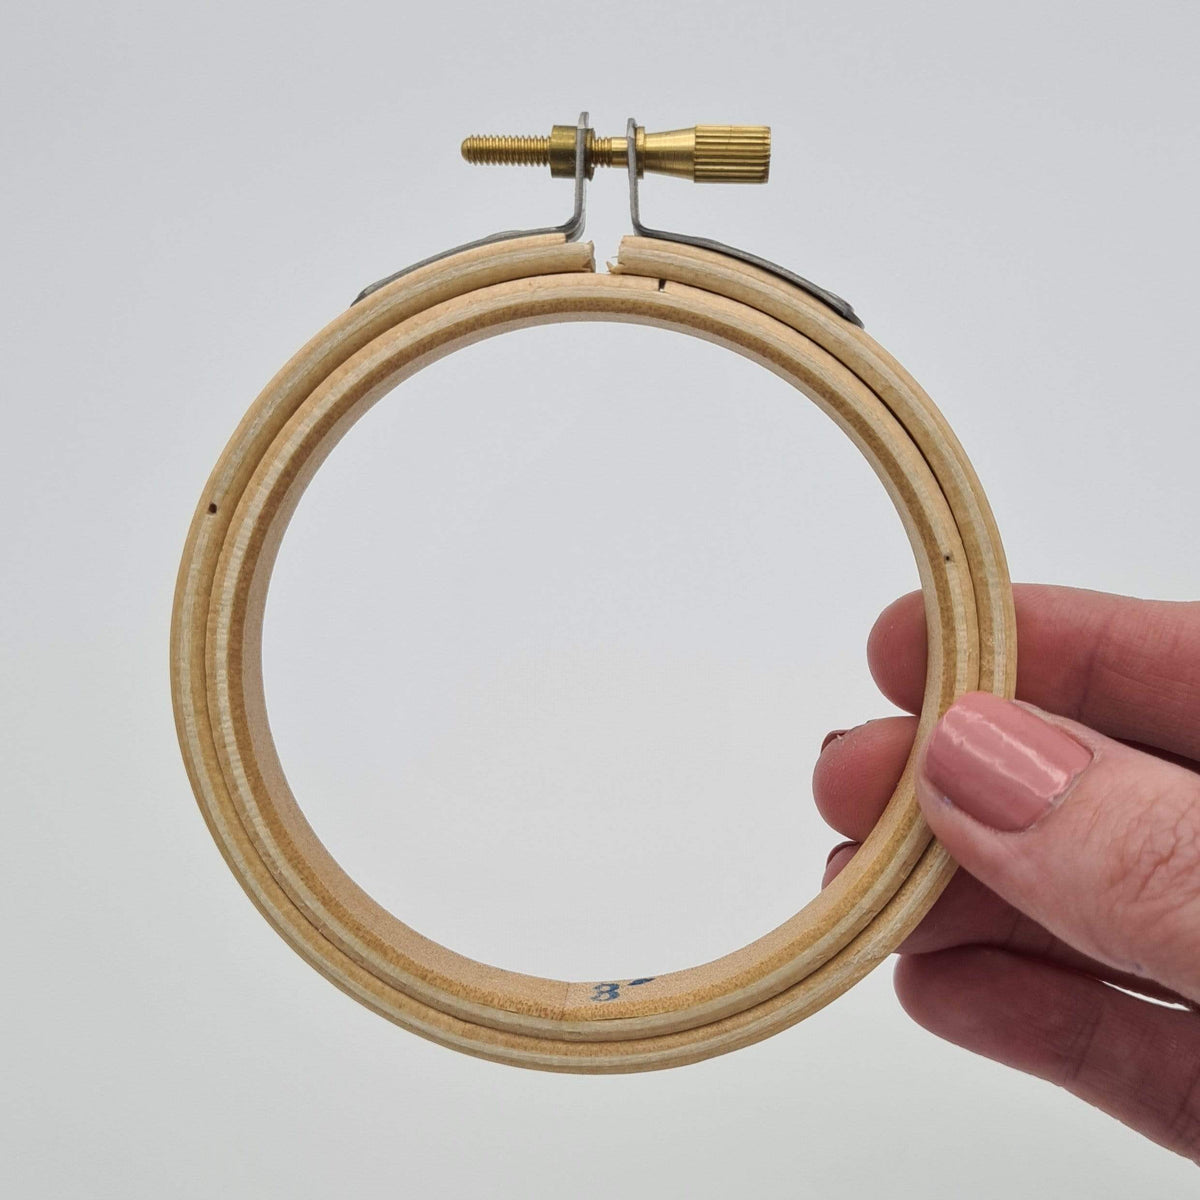 Paraffle Embroidery Supplies & Accessories Embroidery Hoop (7.5cm/3 inches)